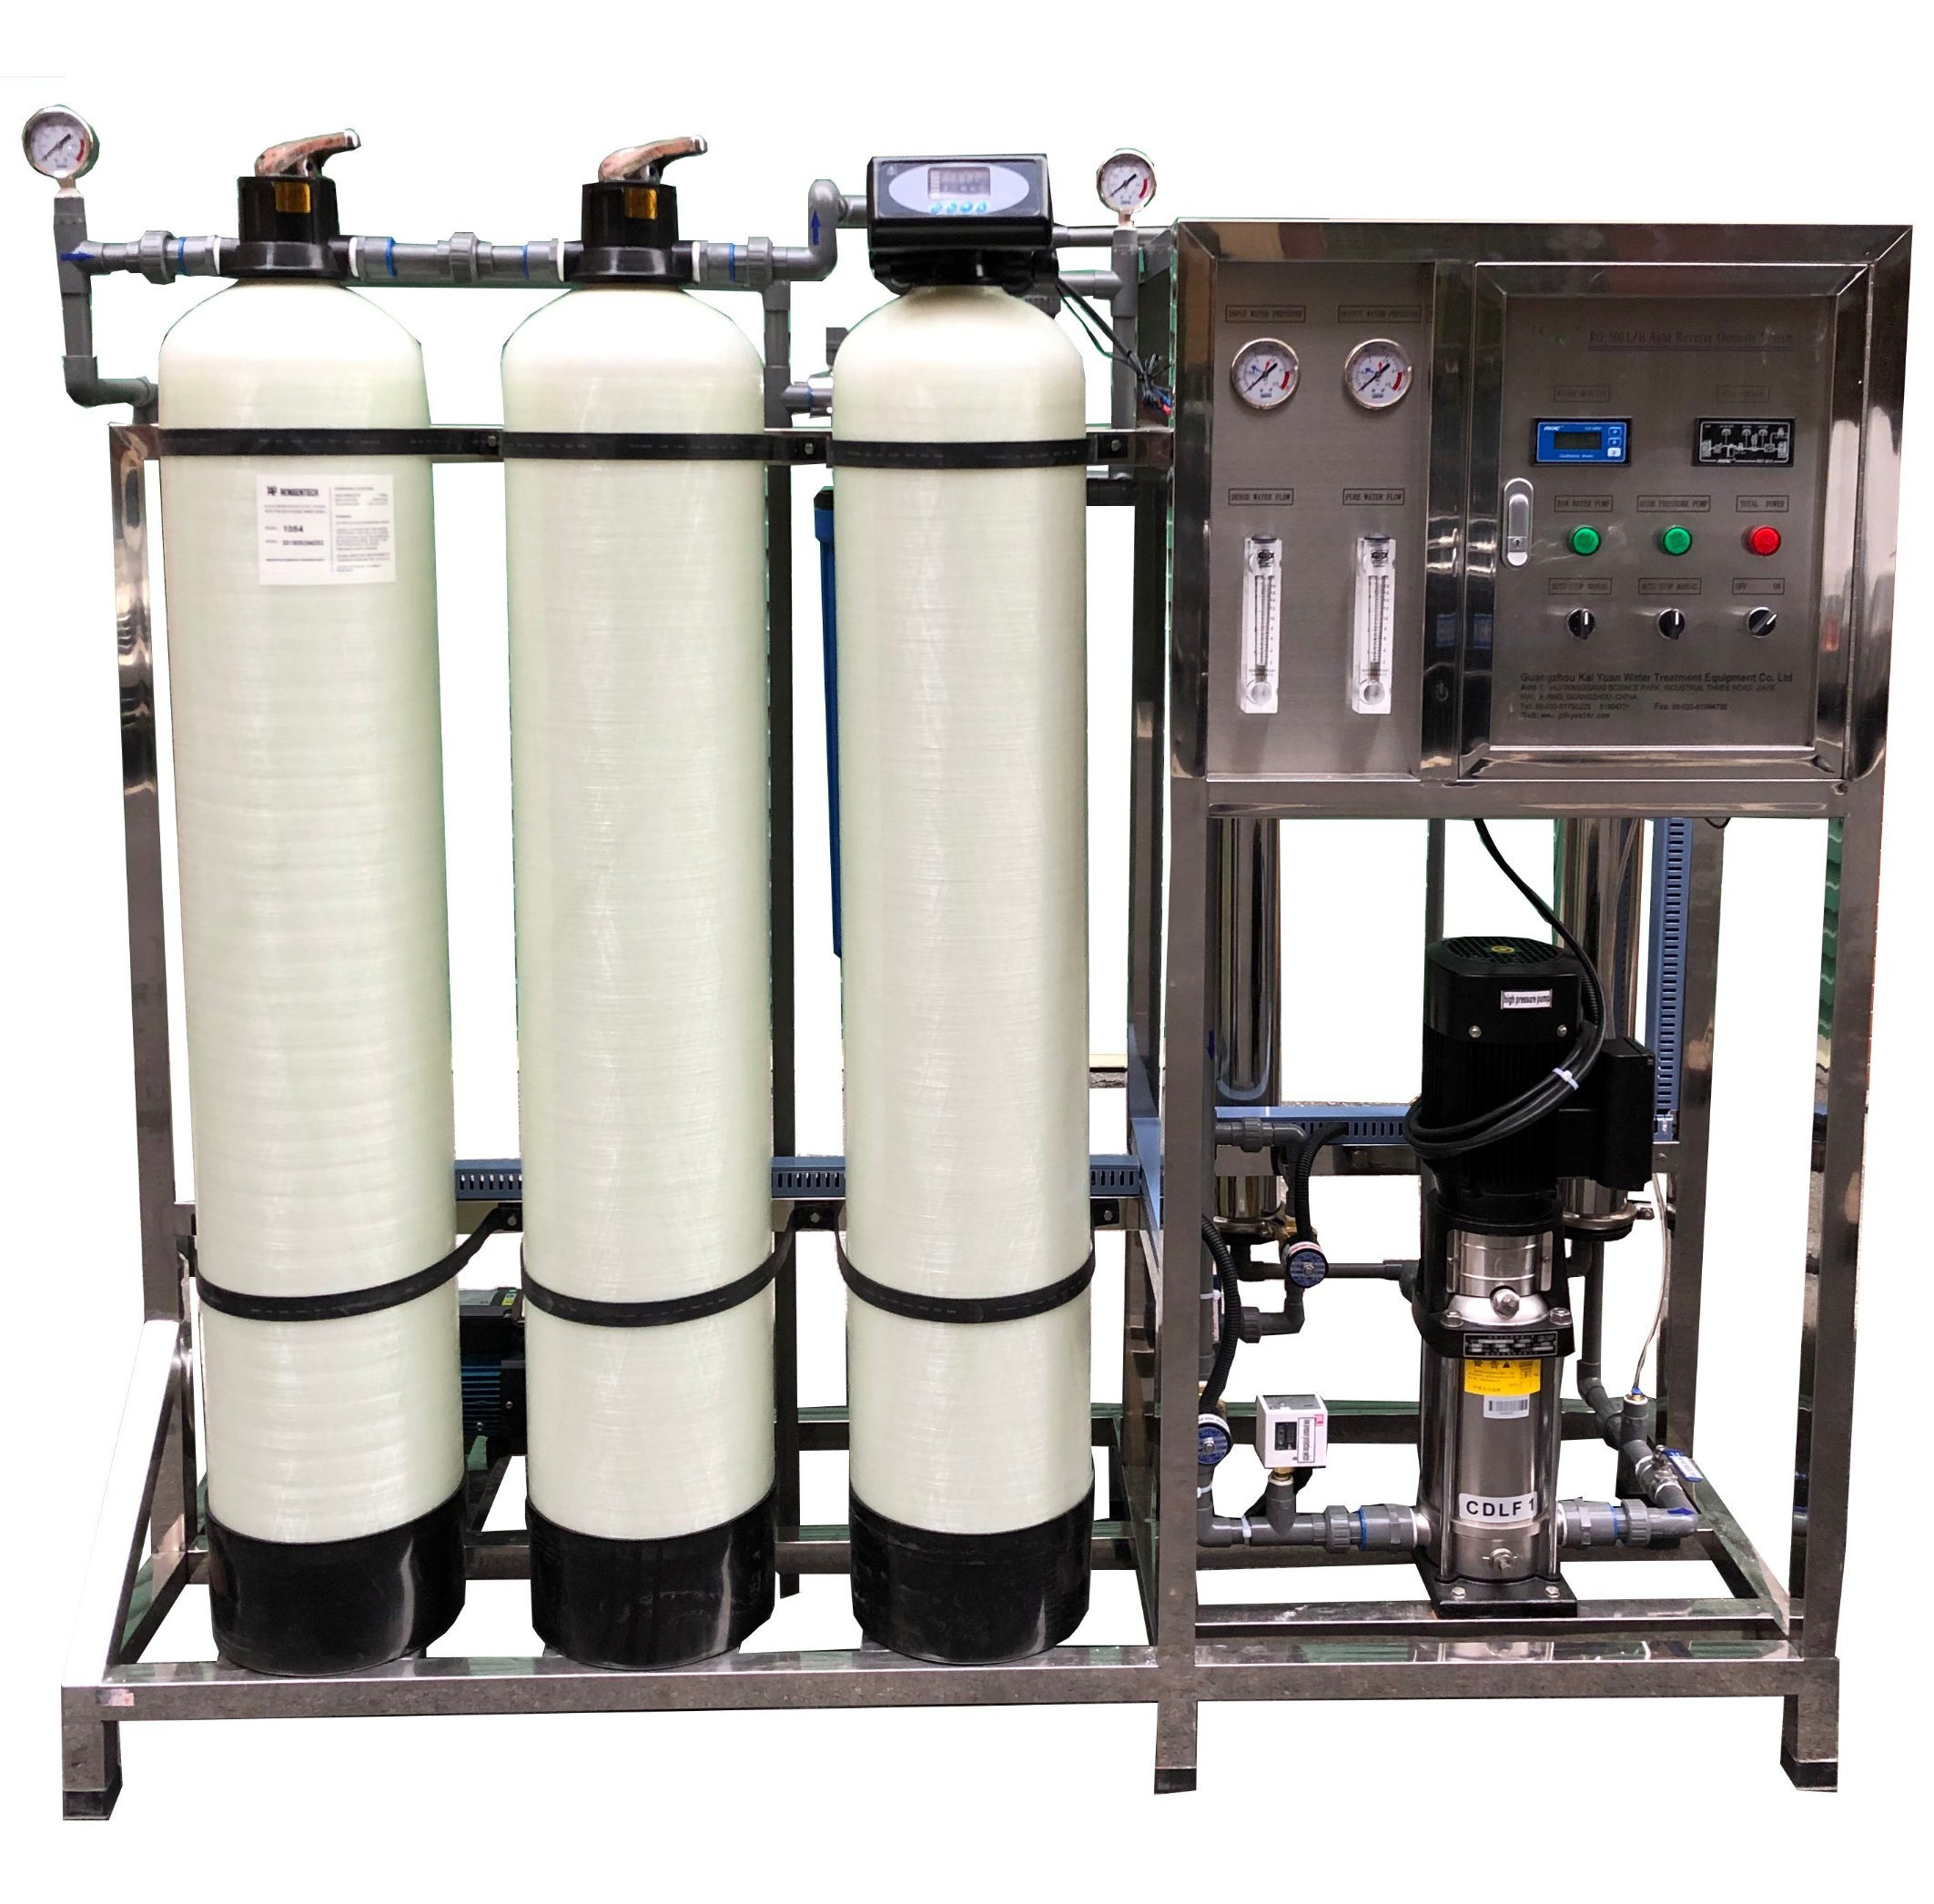 China Industrial Water Filter RO Water Purifier Machine for Pure Drinking  Water Treatment/Purification - China RO Water Purifier, Water Purifying  Machine